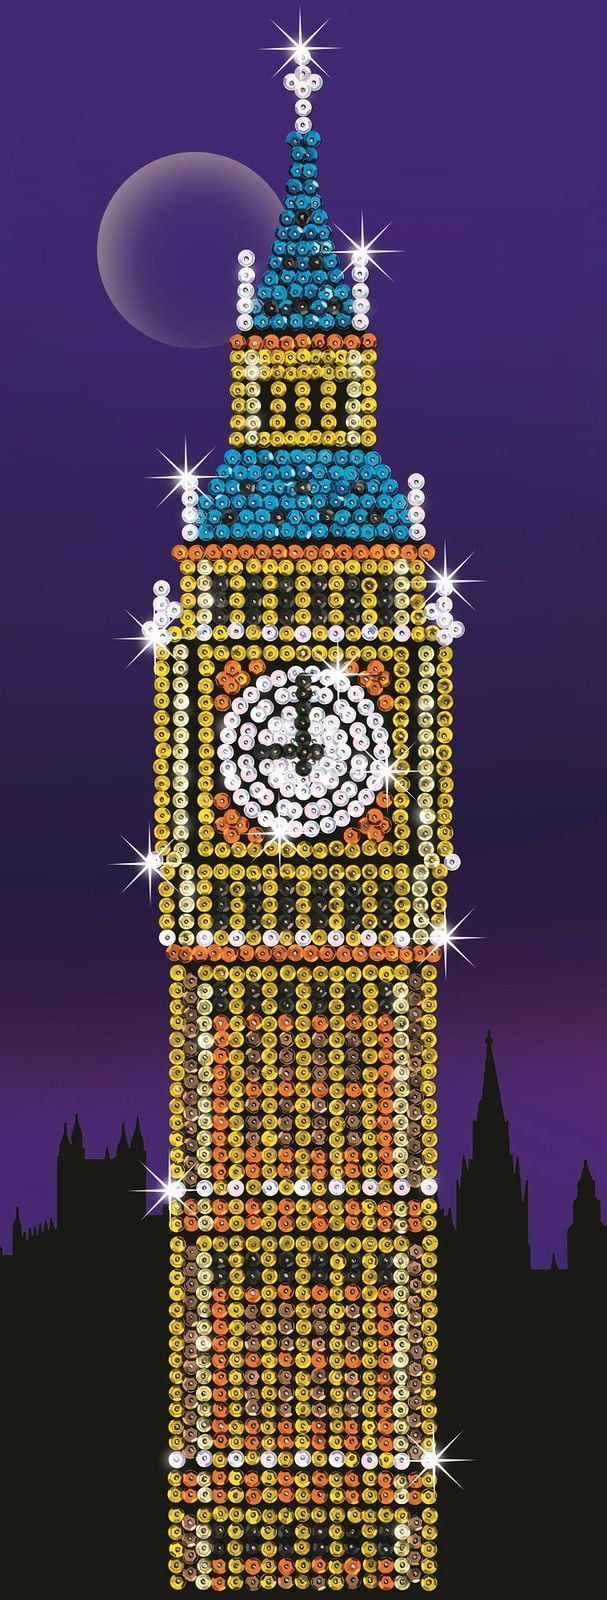 Strictly Sequin Art Big Ben Craft Picture Kit Sa1406 Hobbies